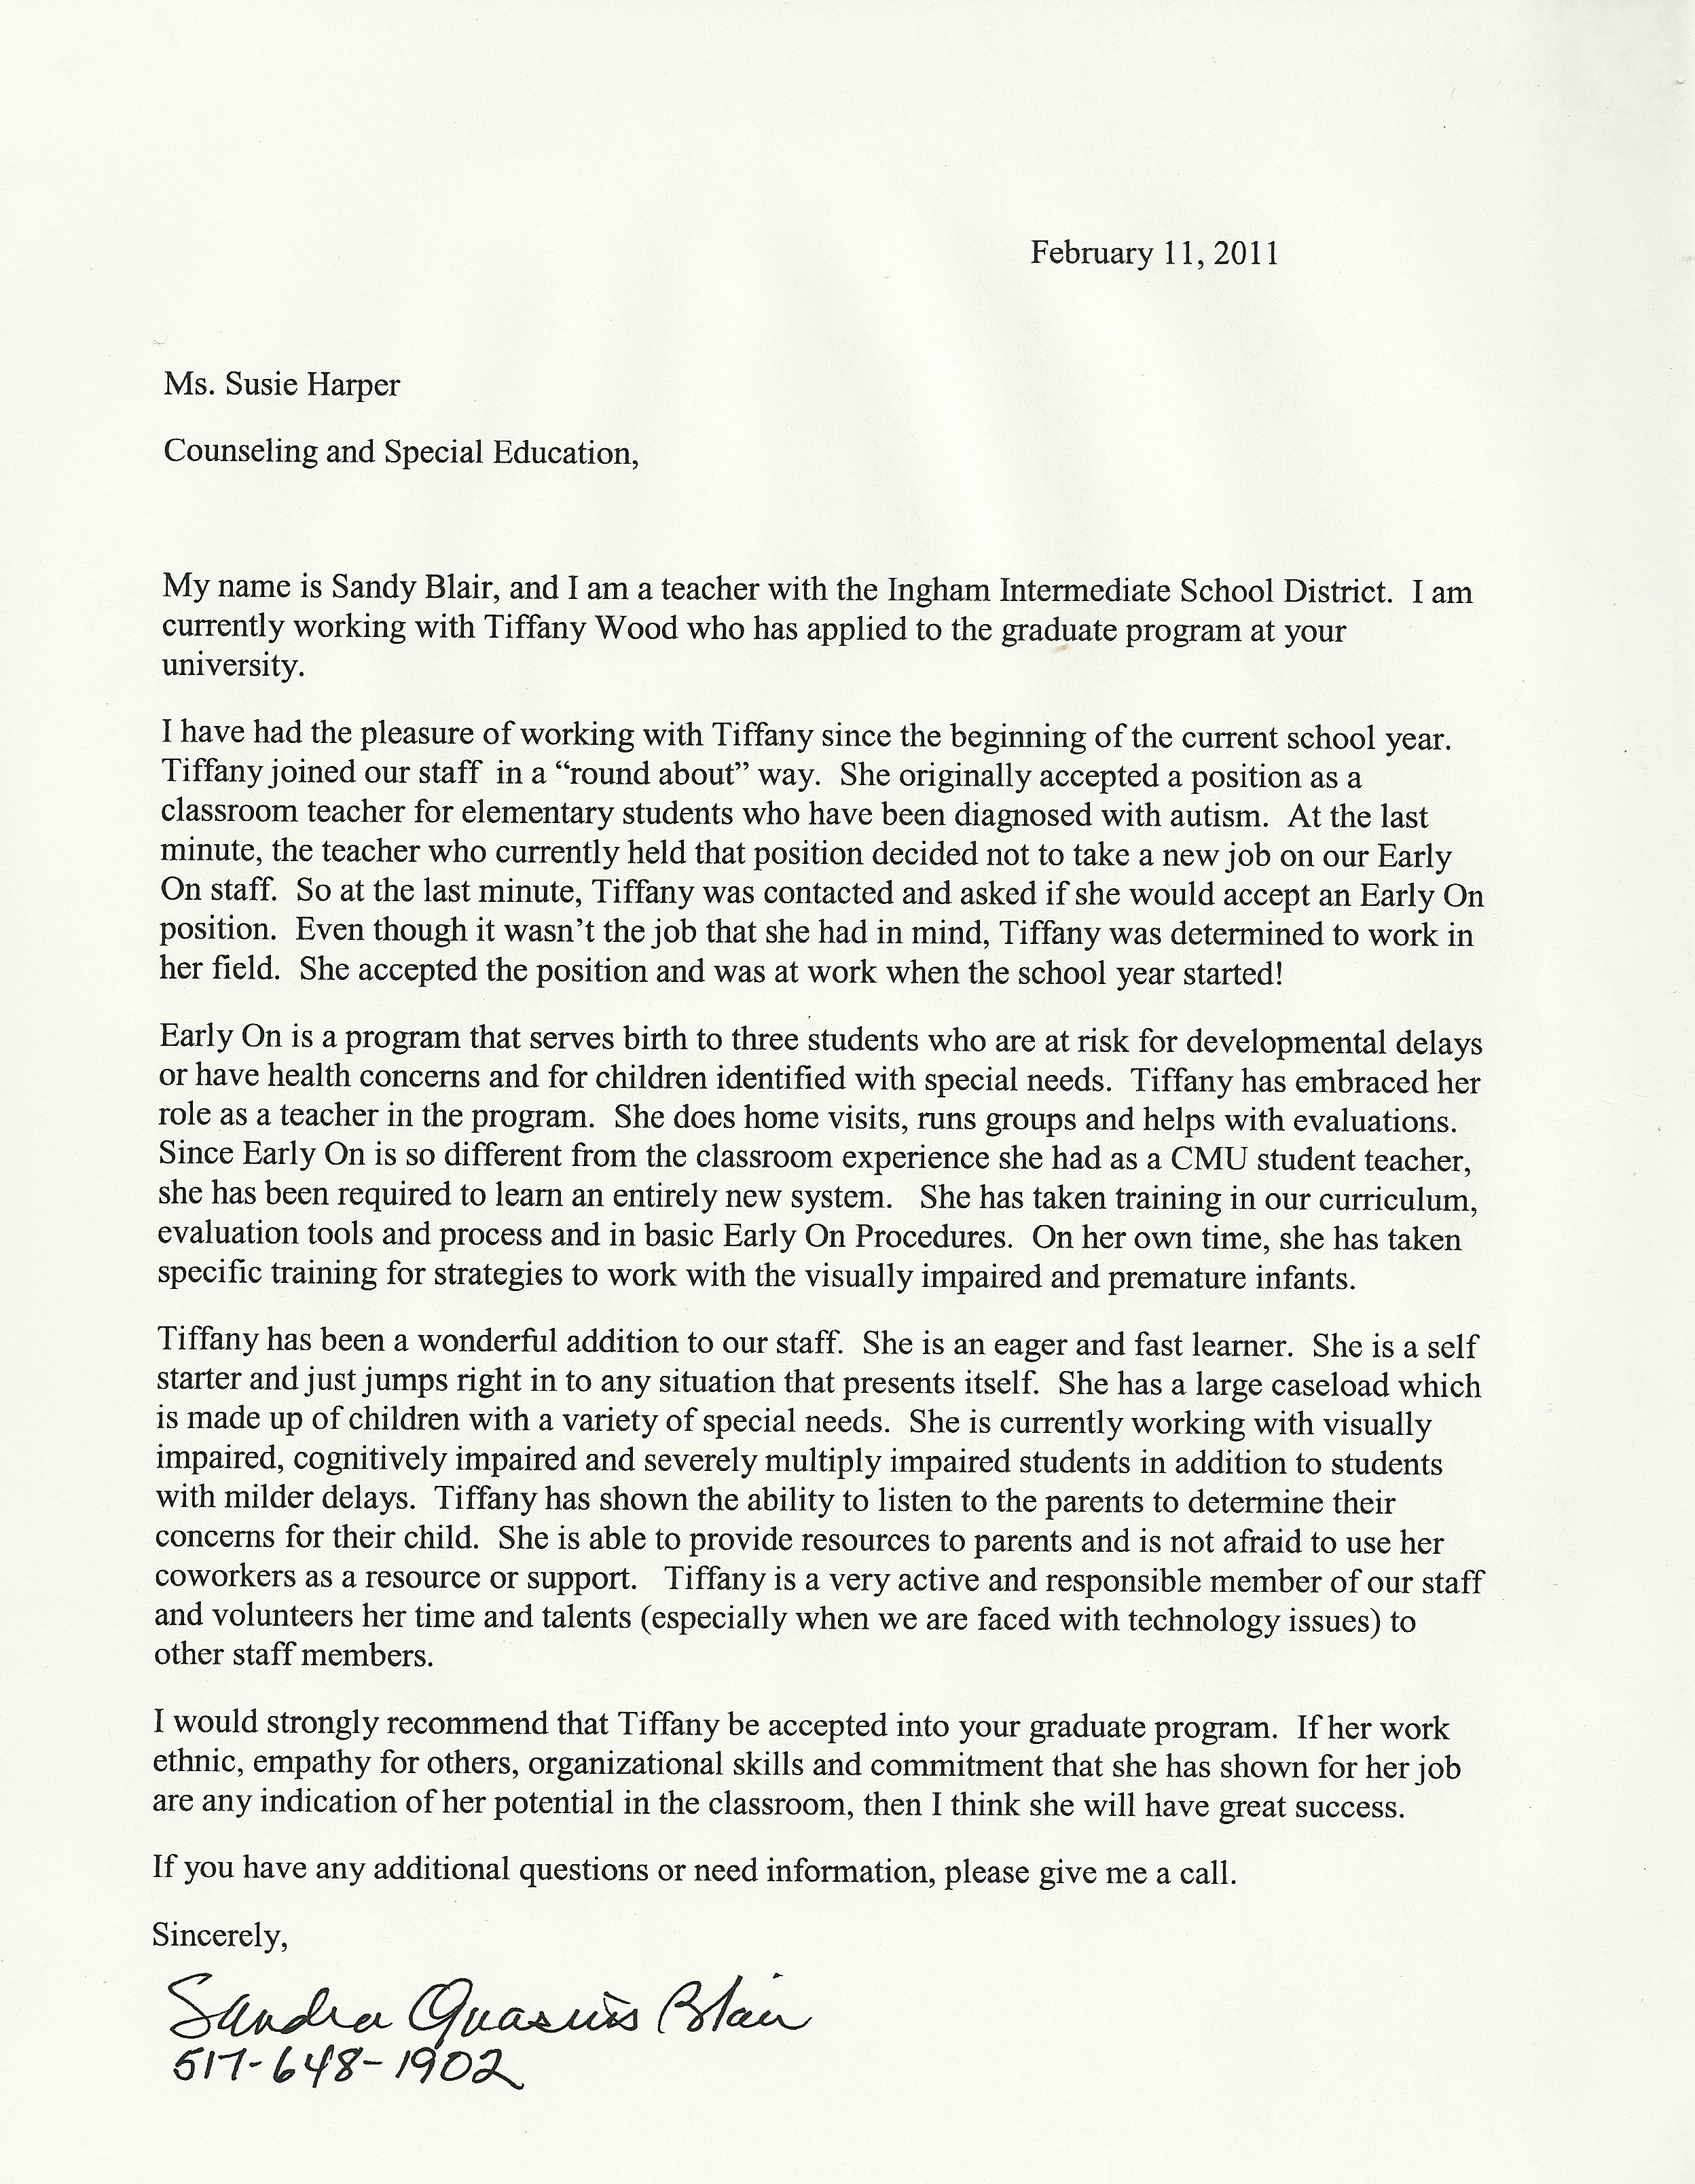 Sample Letter of Recommendation for Student Teachers